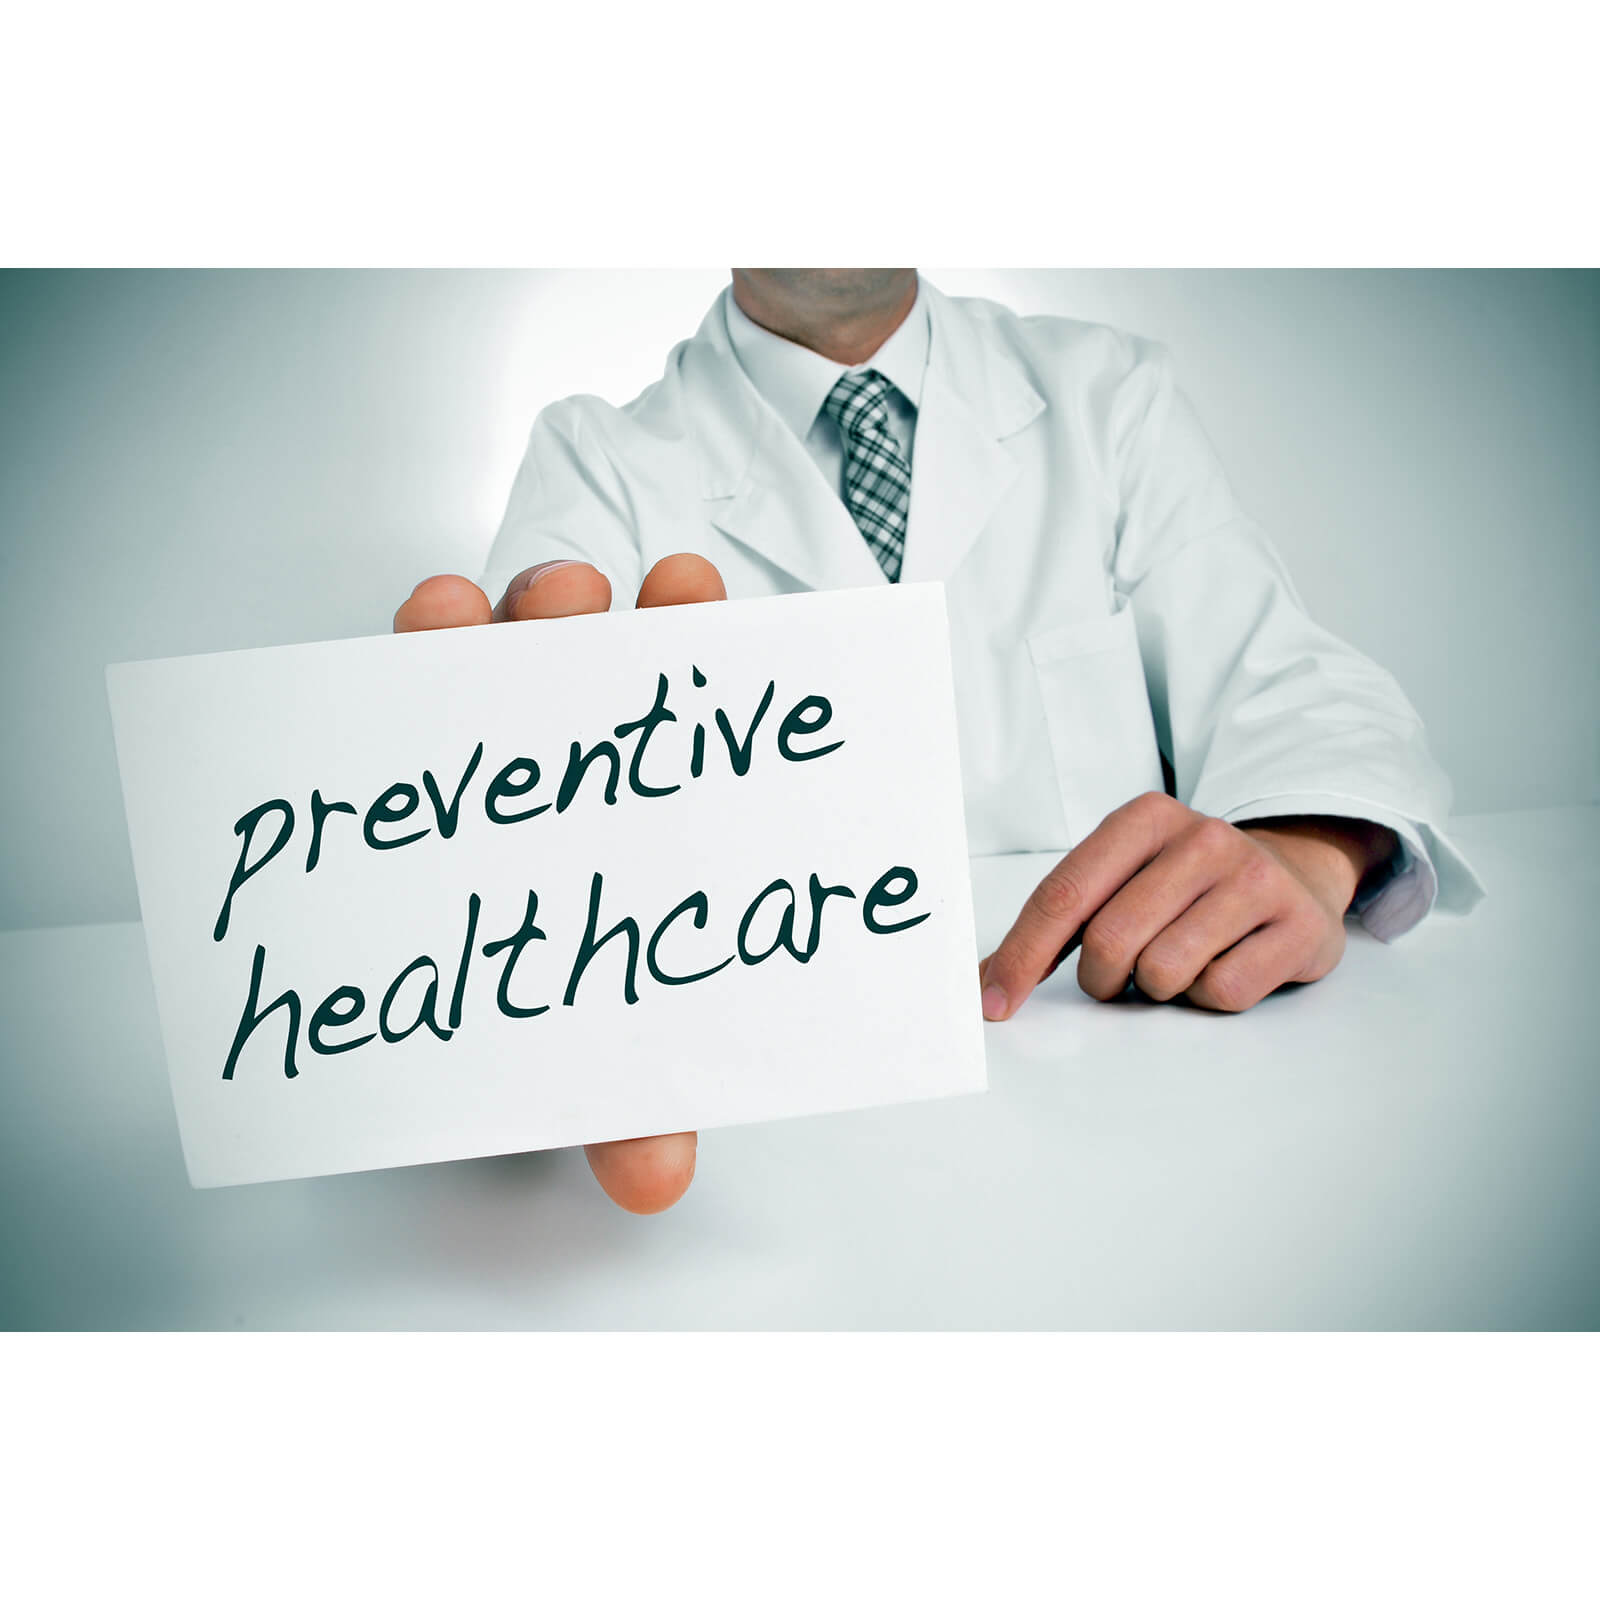 Part B Medical Insurance - Preventive Healthcare